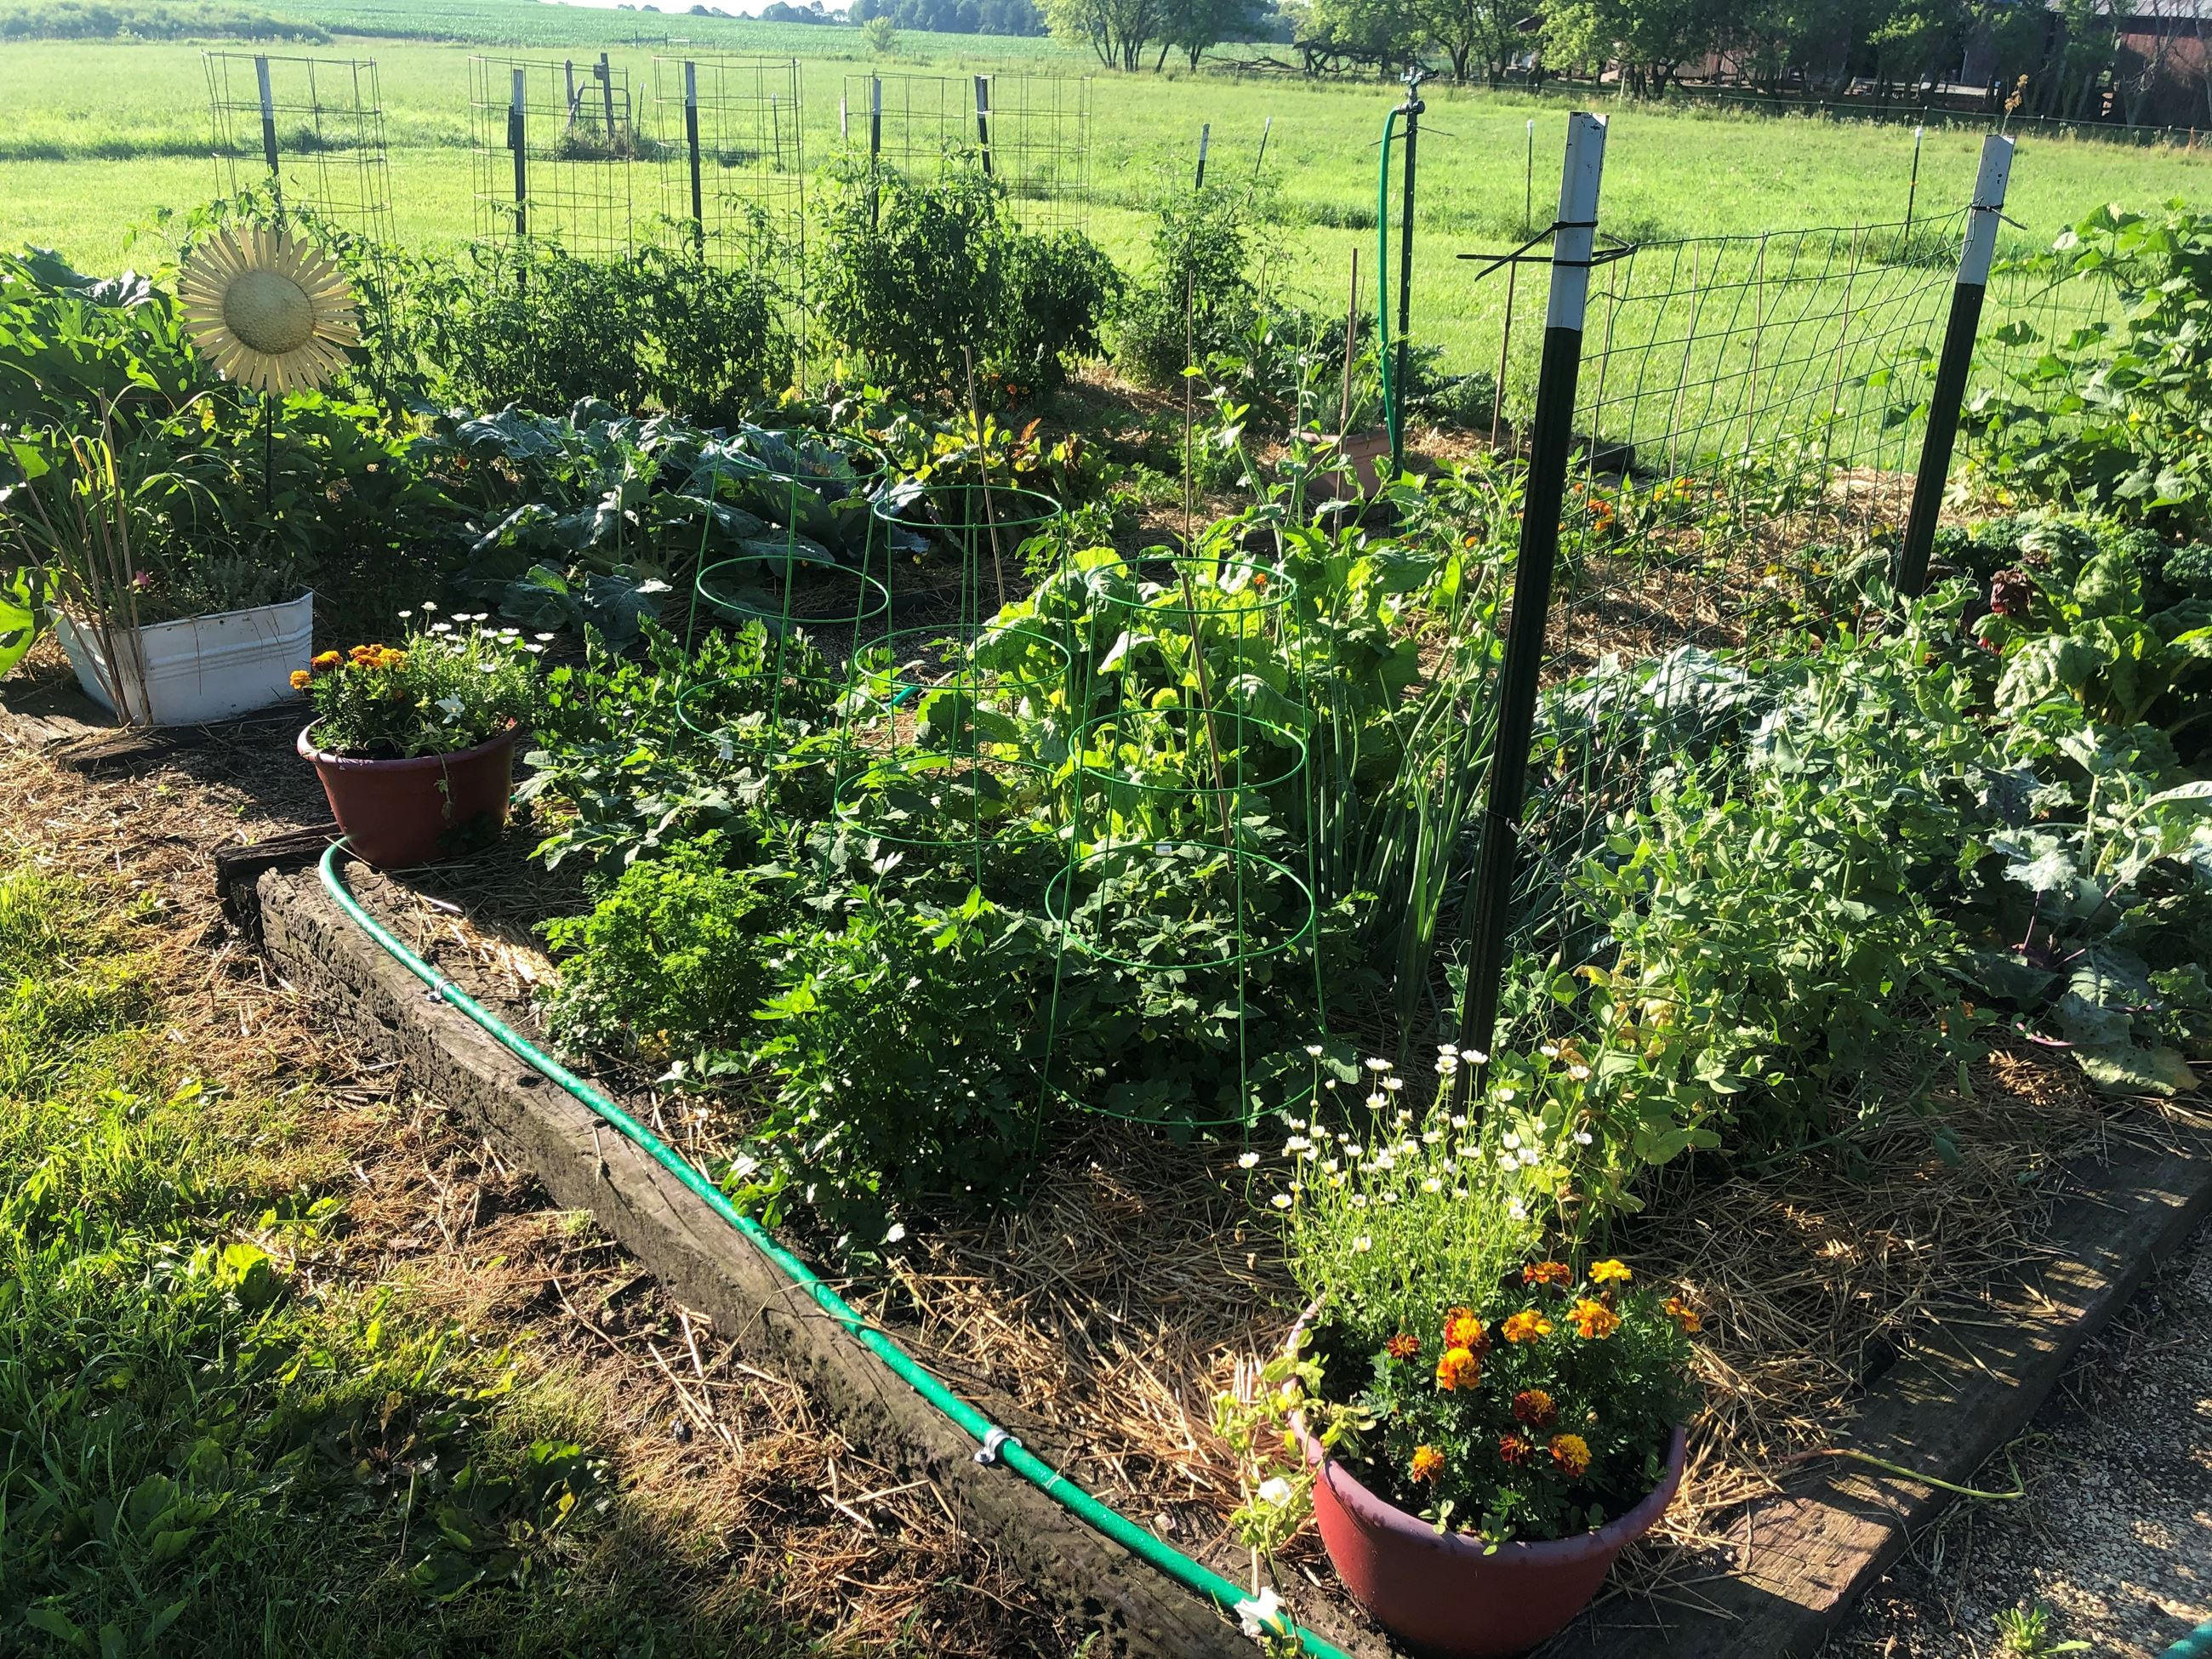 A garden with many different types of vegetables in it.